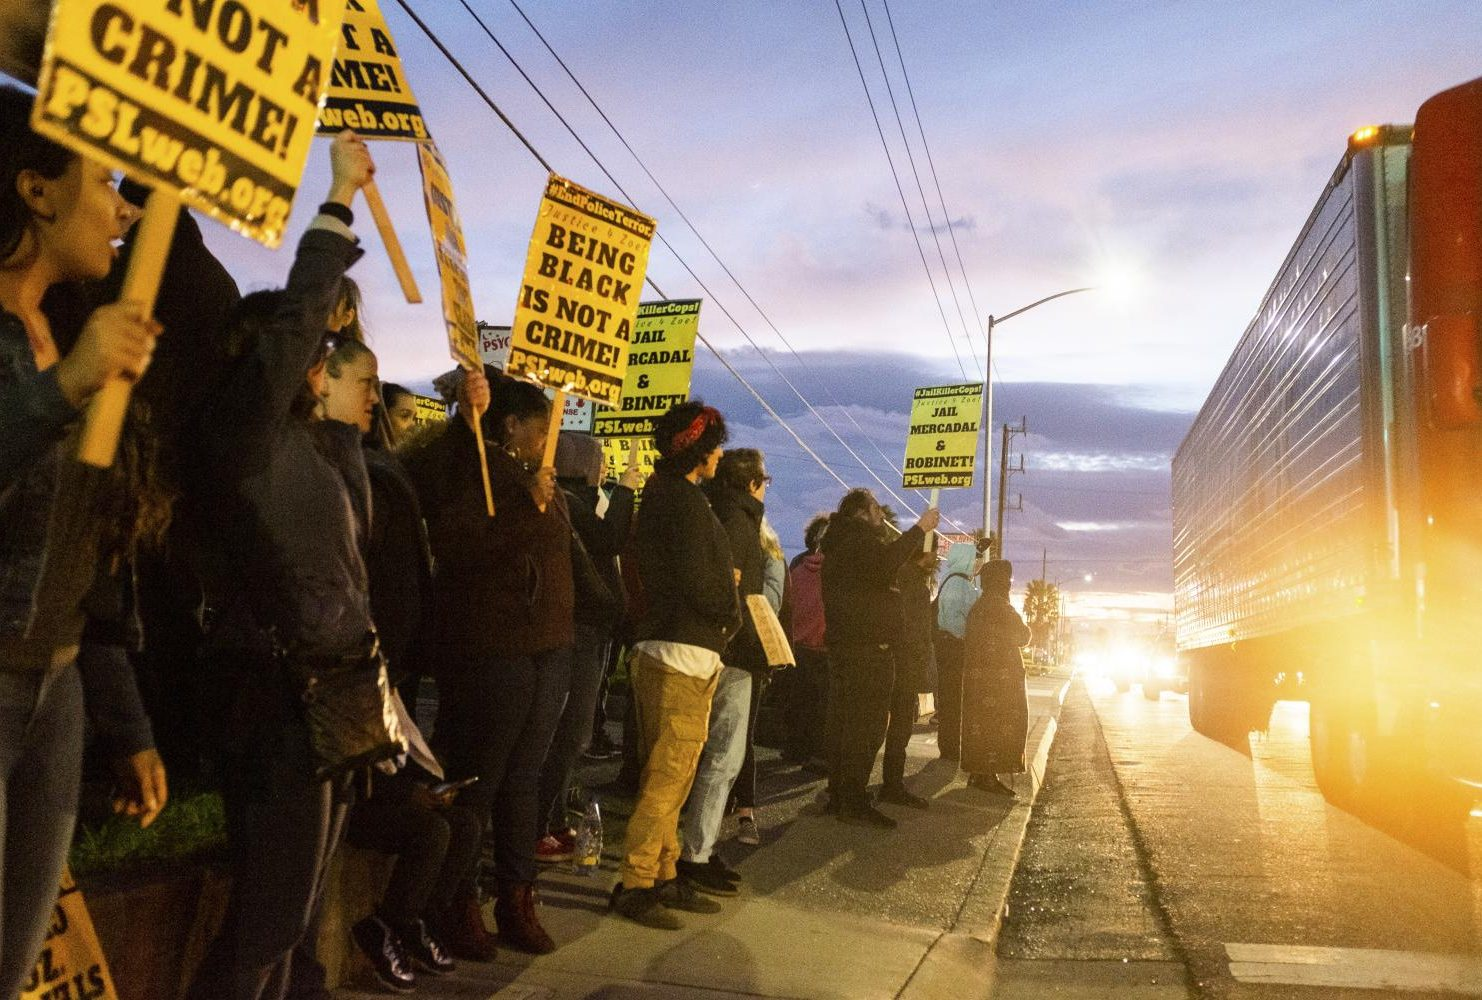 Demonstrators gather on the corner of Florin Road and 29th Street to protest the decision by the Sacramento County District Attorney's Office to not press charges against the two police officers who shot and killed Stephon Clark last year. (Photo by Patrick Hyun Wilson)